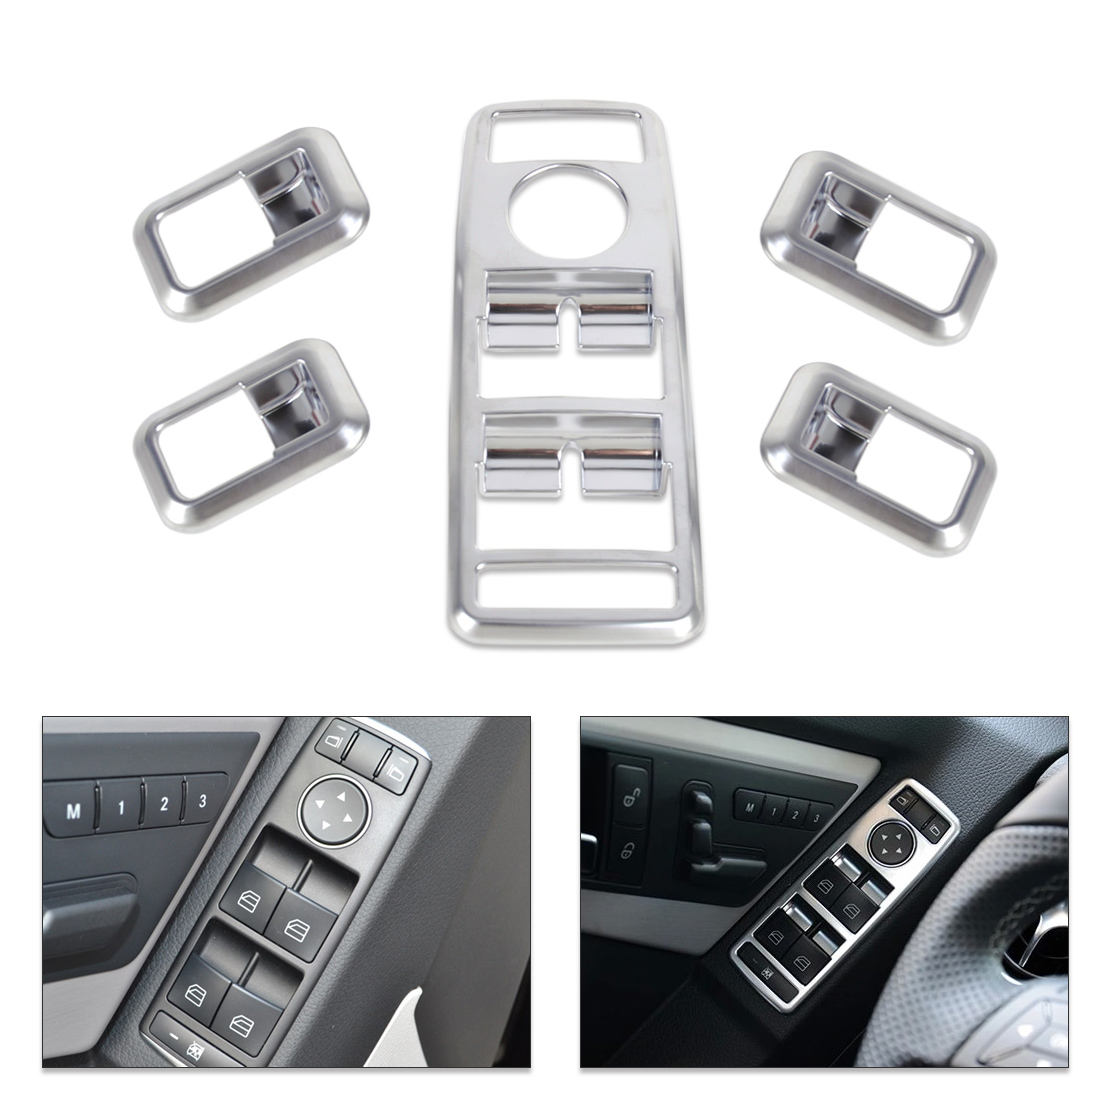 Car Styling Matt Chrome Door Window Switch panel Cover Trim for Mercedes Benz A B C GLK Class W176 W246 W204 W212 W218 X204